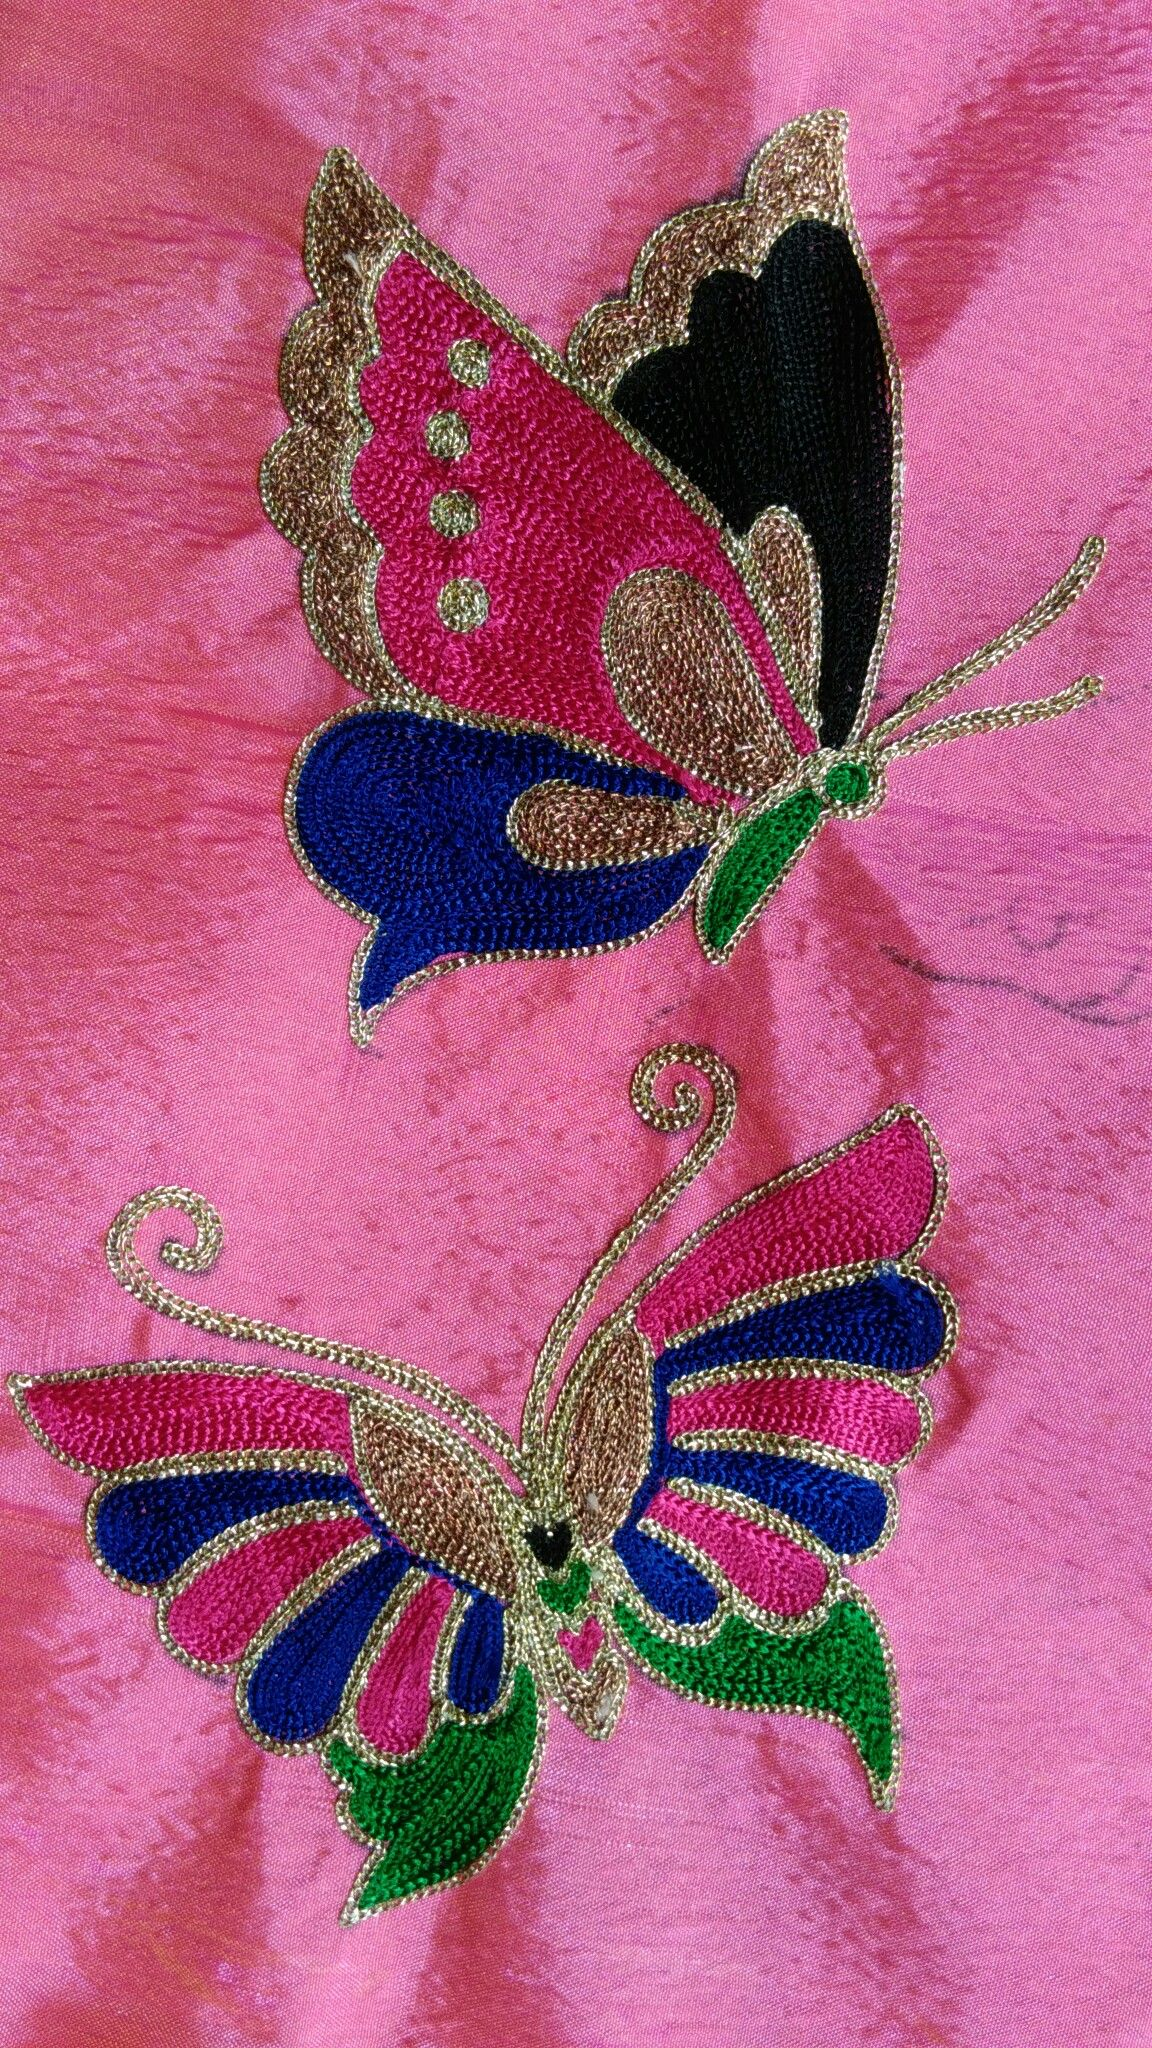 Pin by gayatri palleti on work pinterest blouse designs embroidery patterns hand embroidery machine embroidery blouse designs saree honey applique woman clothing blouse bankloansurffo Images